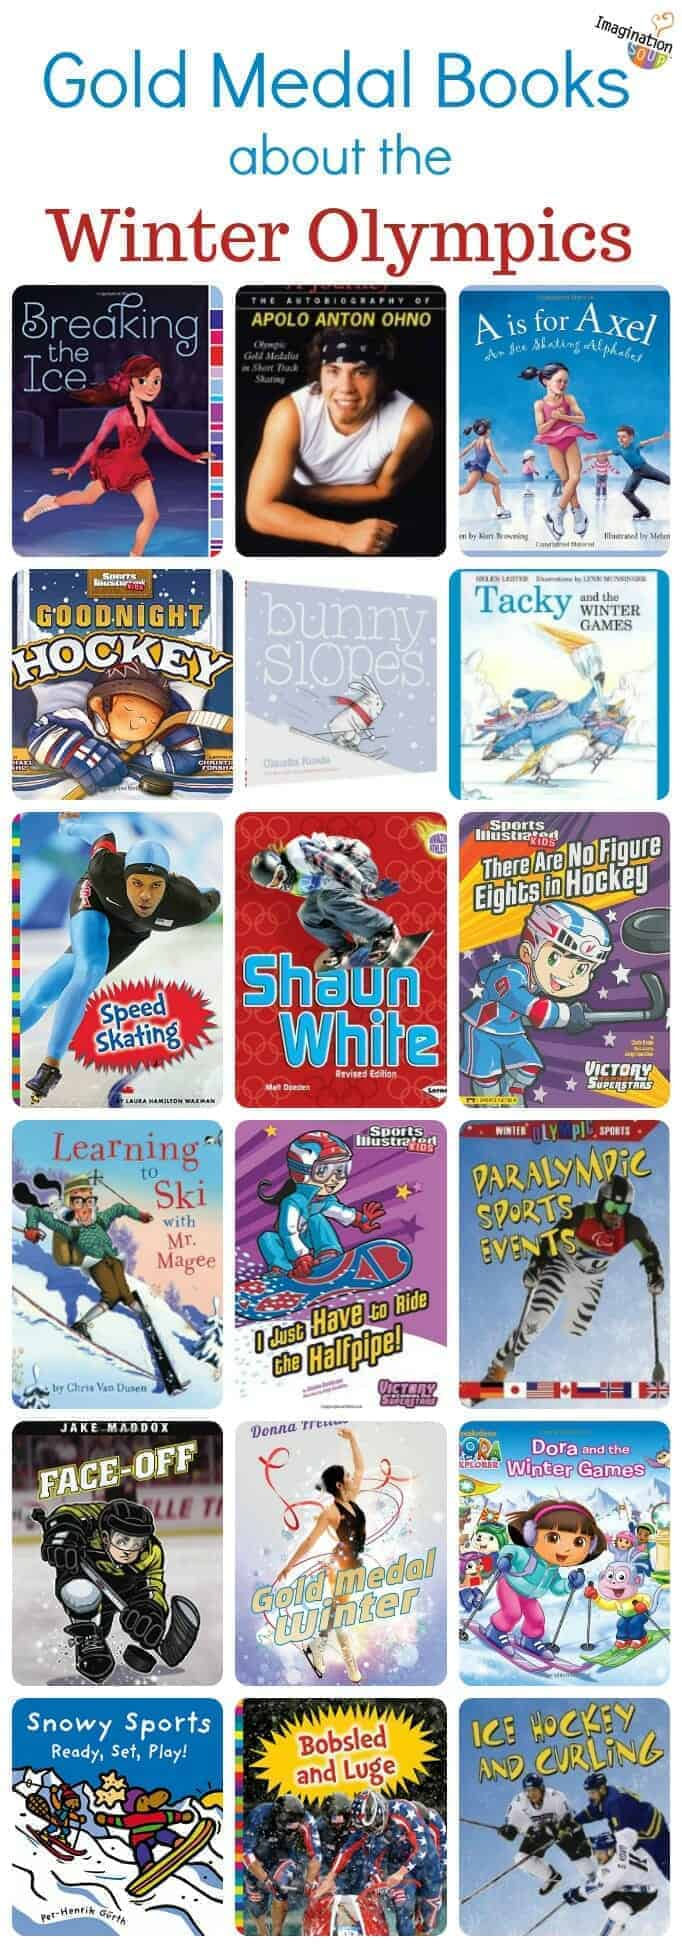 the best children's books about the winter Olympics (picture books, nonfiction, biographies, and more) #books #kids #childrensbooks #Olympics